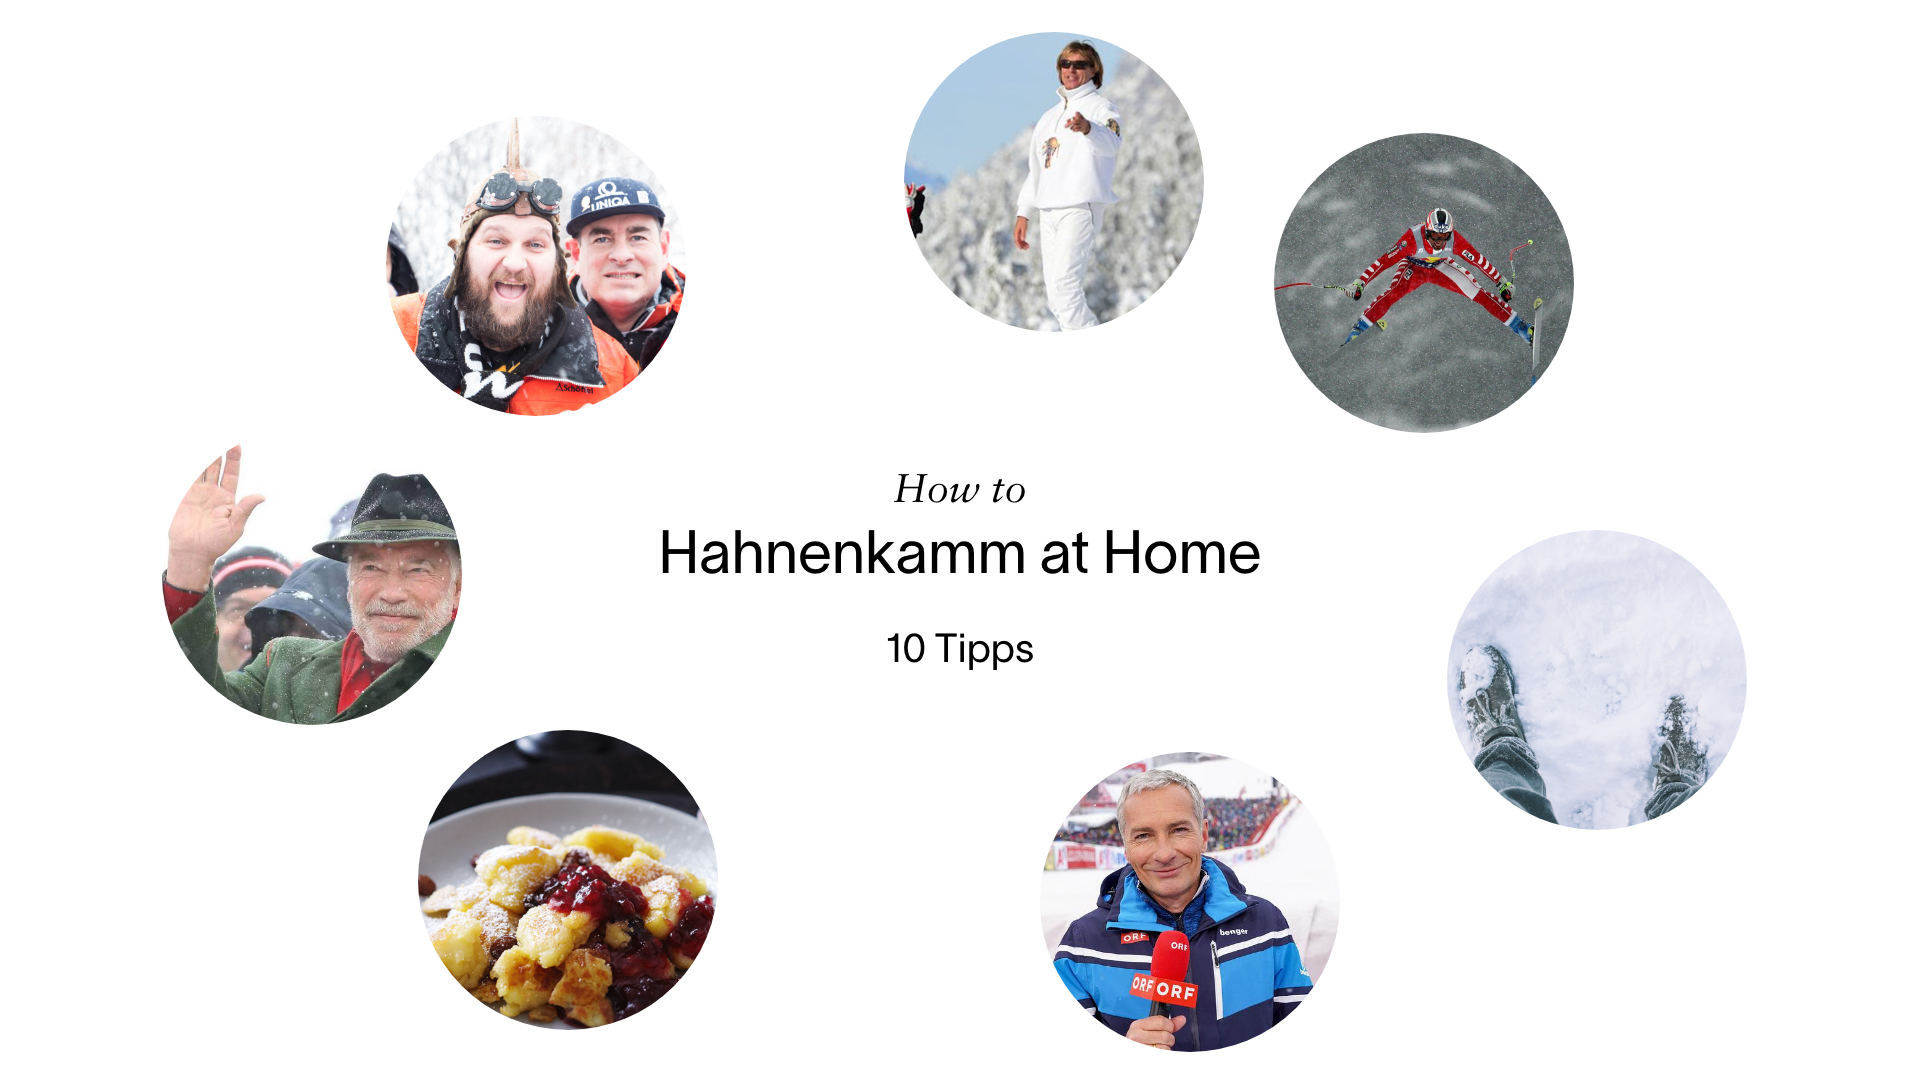 10 Tipps: How to Hahnenkamm at Home